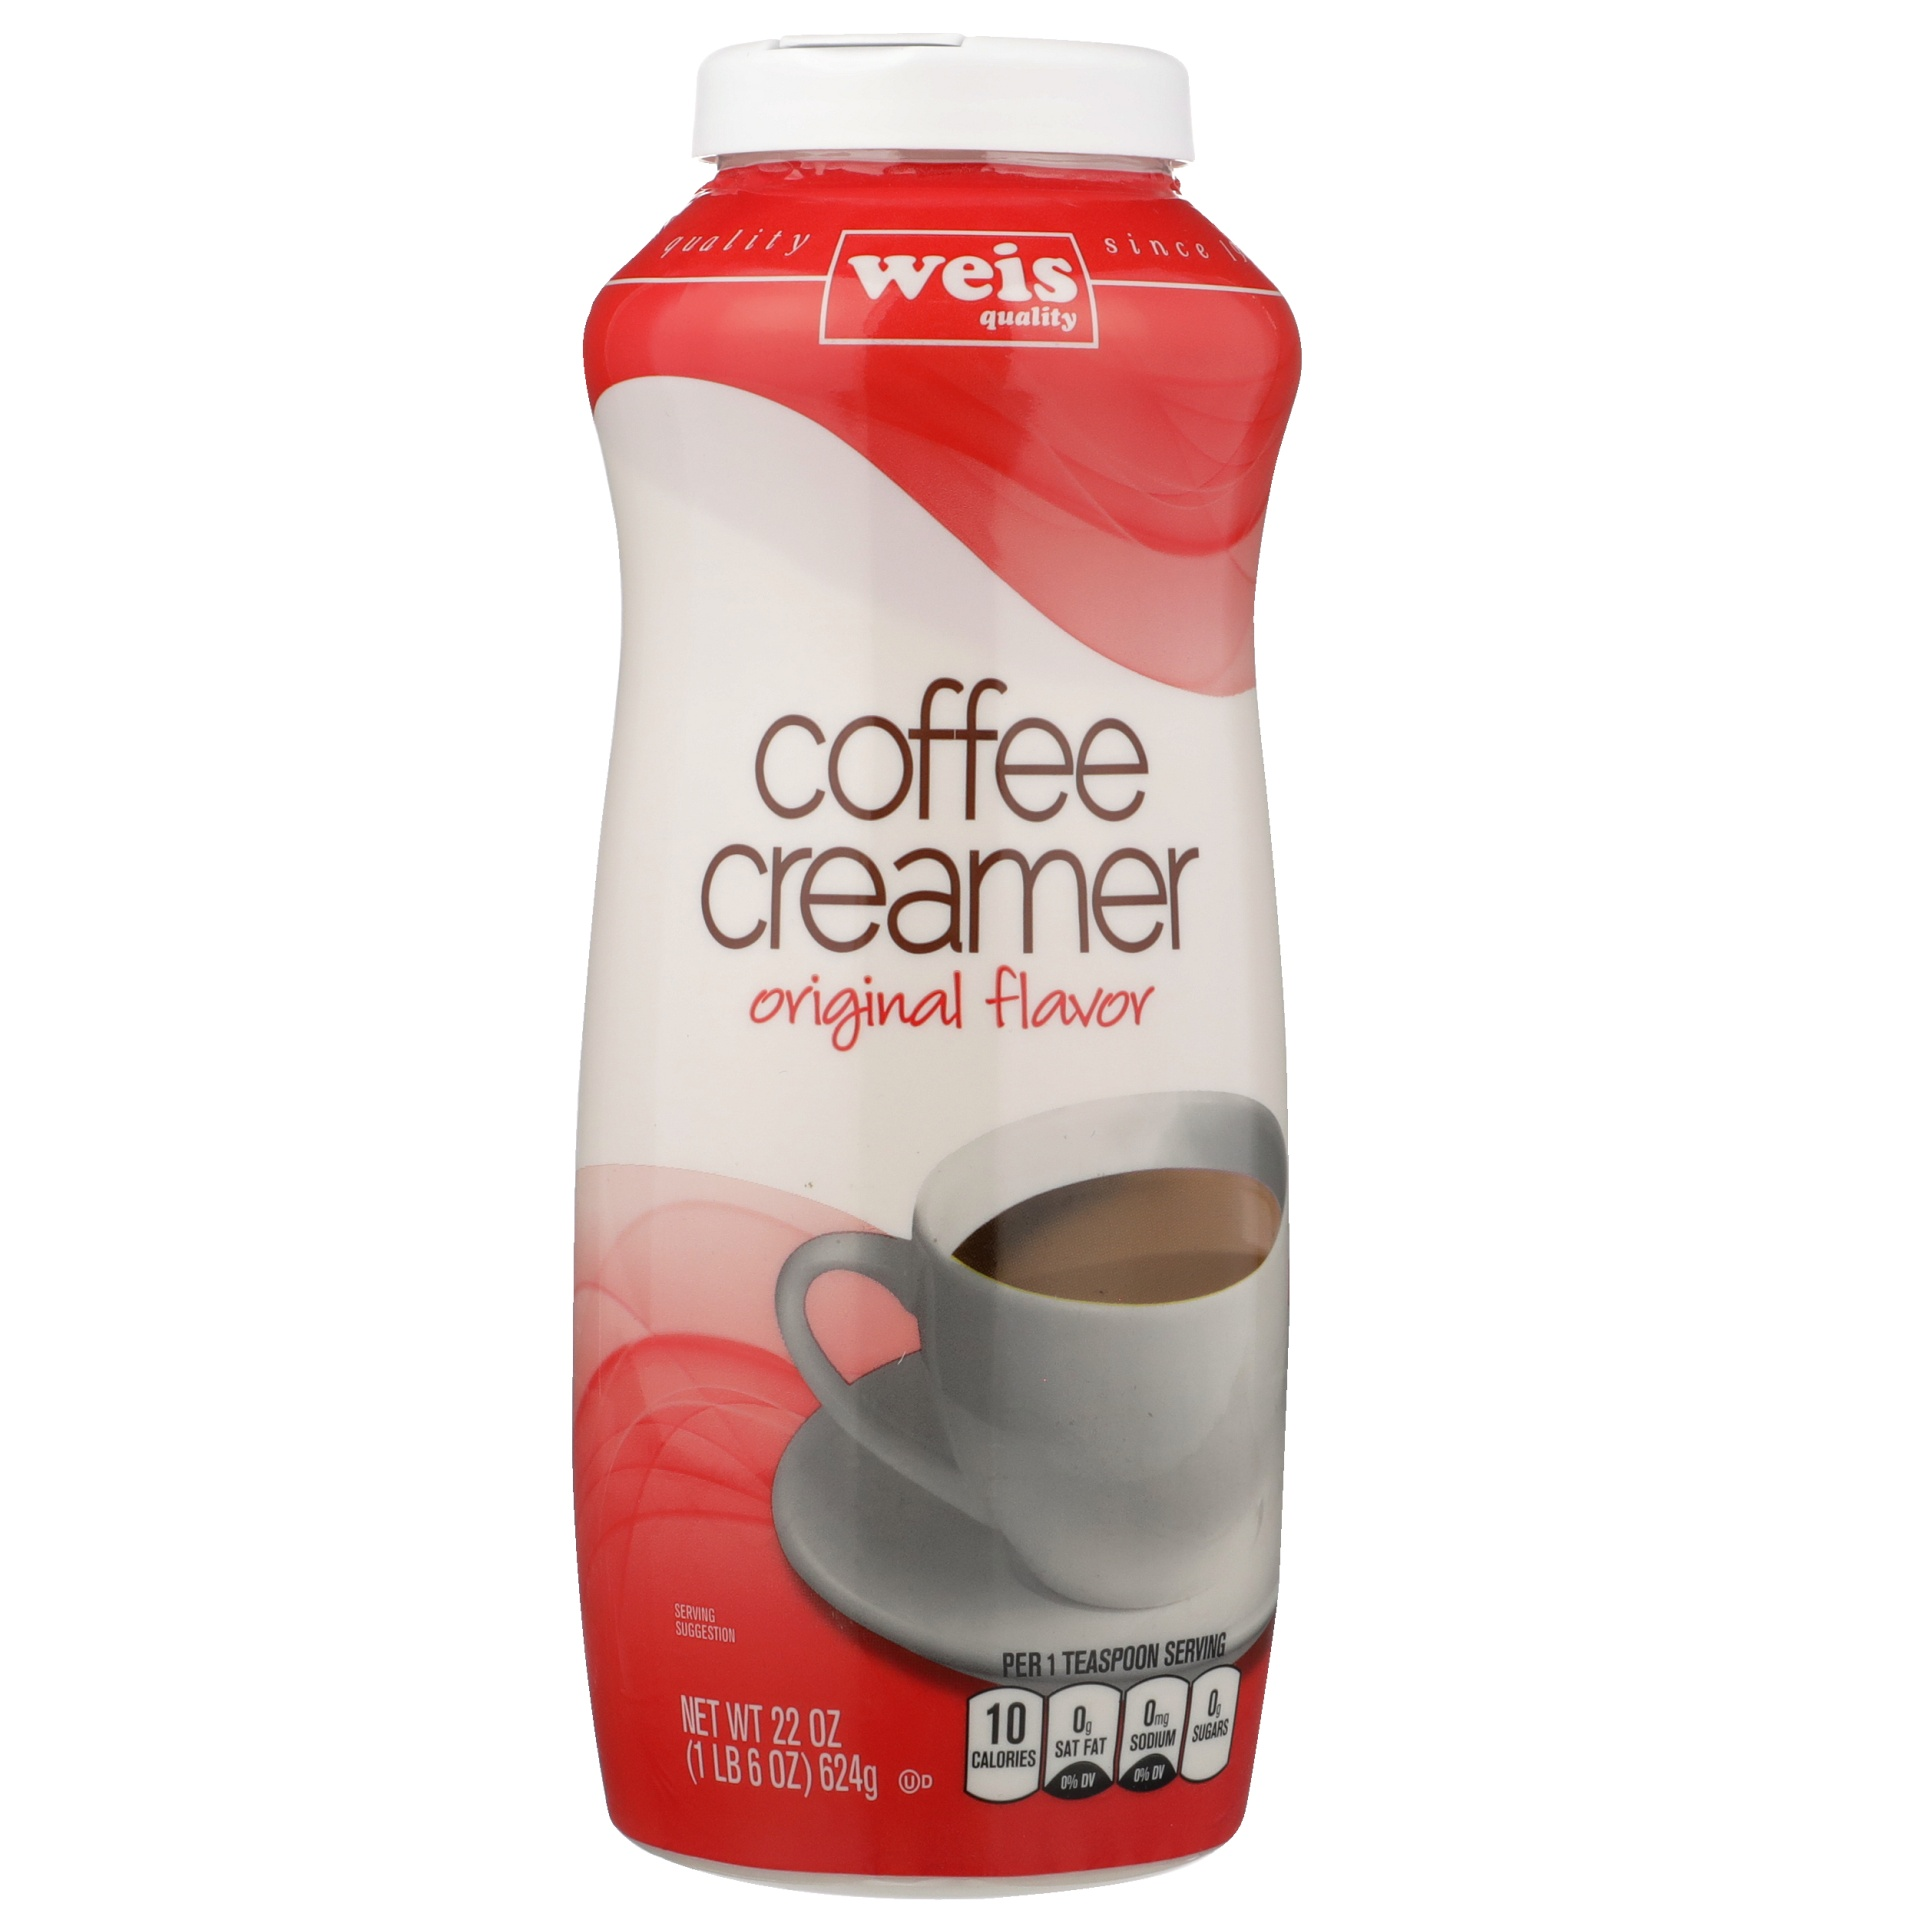 slide 1 of 6, Weis Quality Non-Dairy Coffee Creamer,